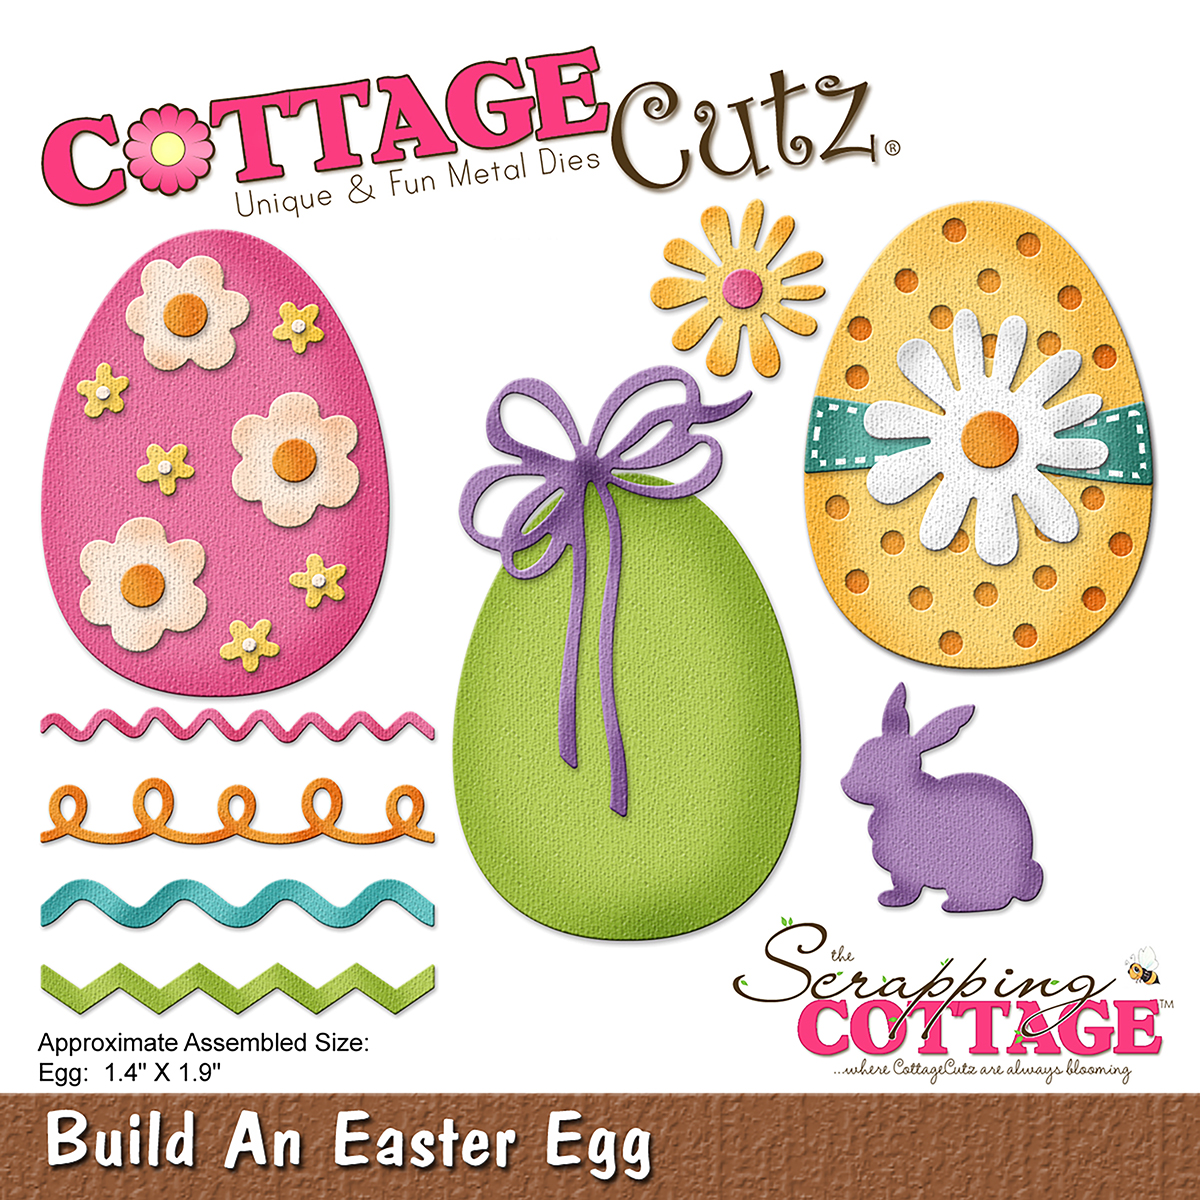 CC-233 Wykrojnik CottageCutz -Build An Easter Egg-jajka